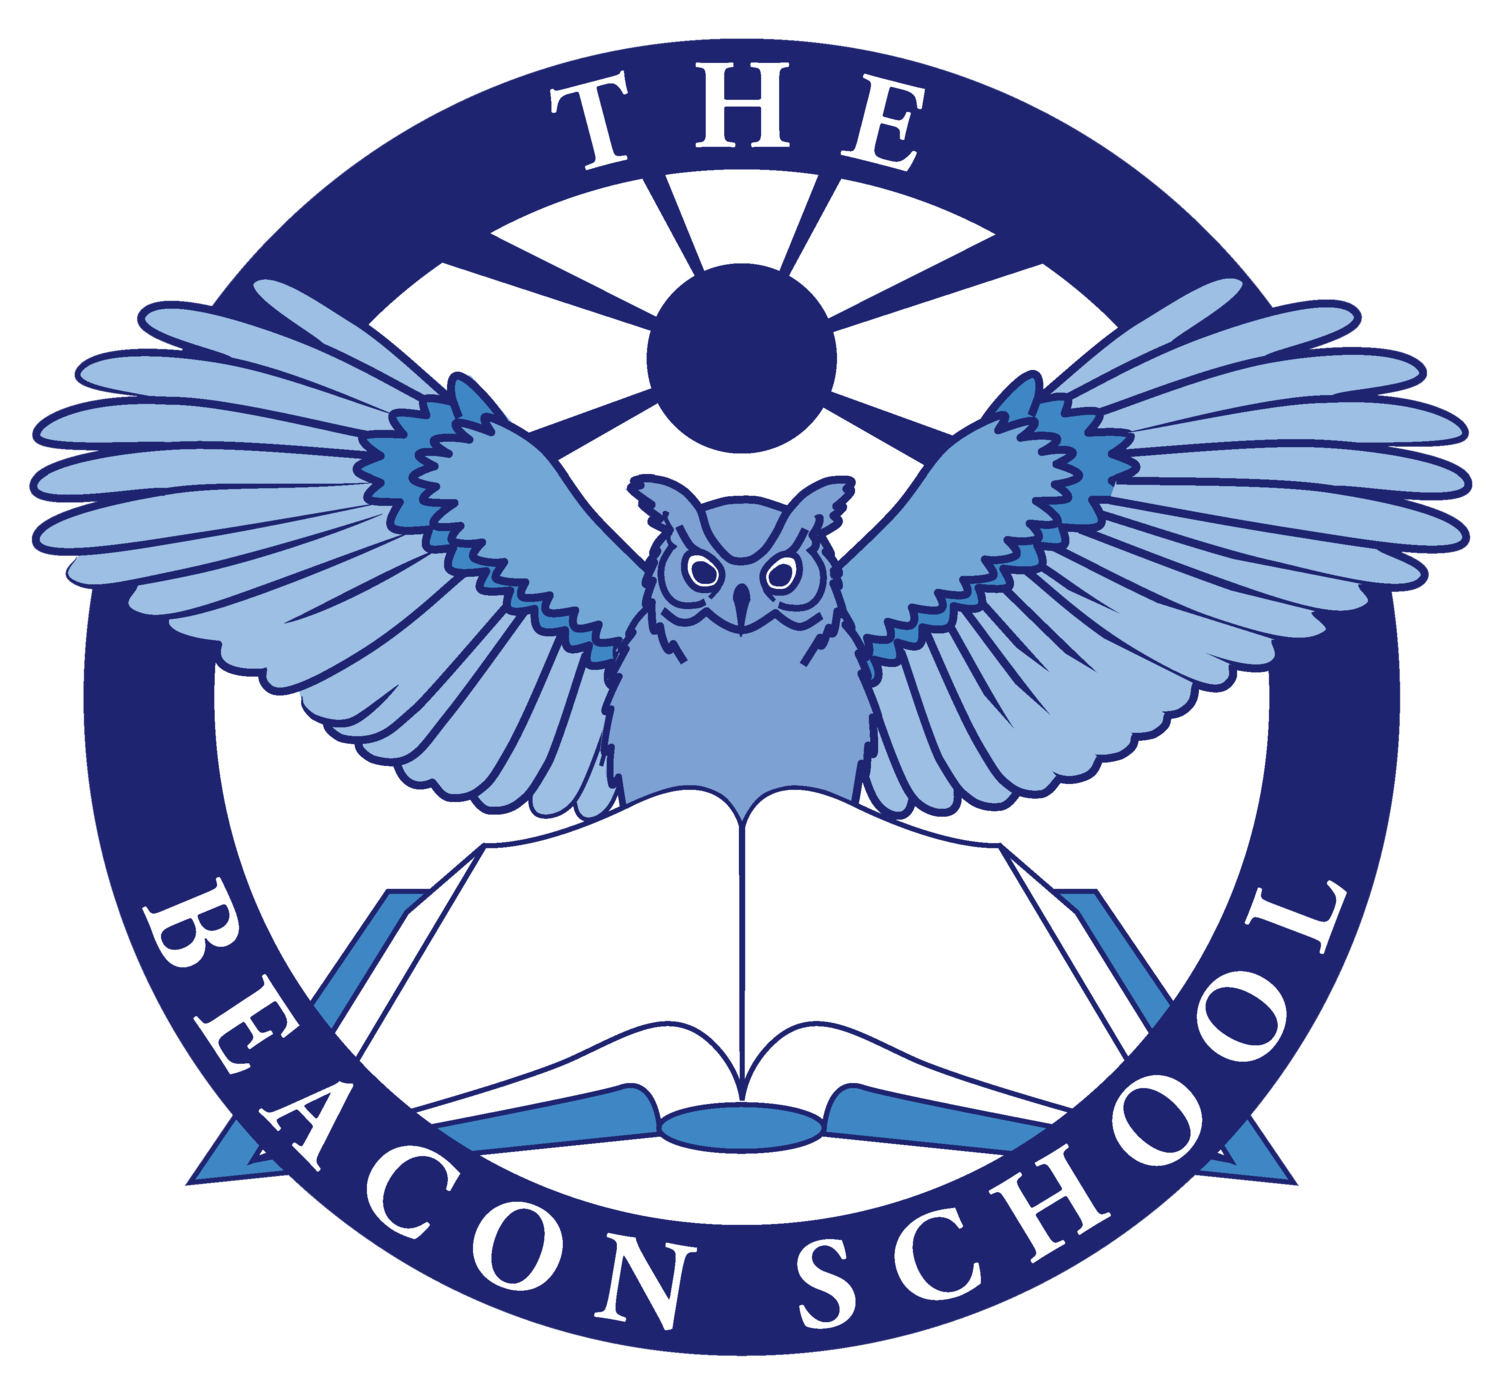 The Beacon School